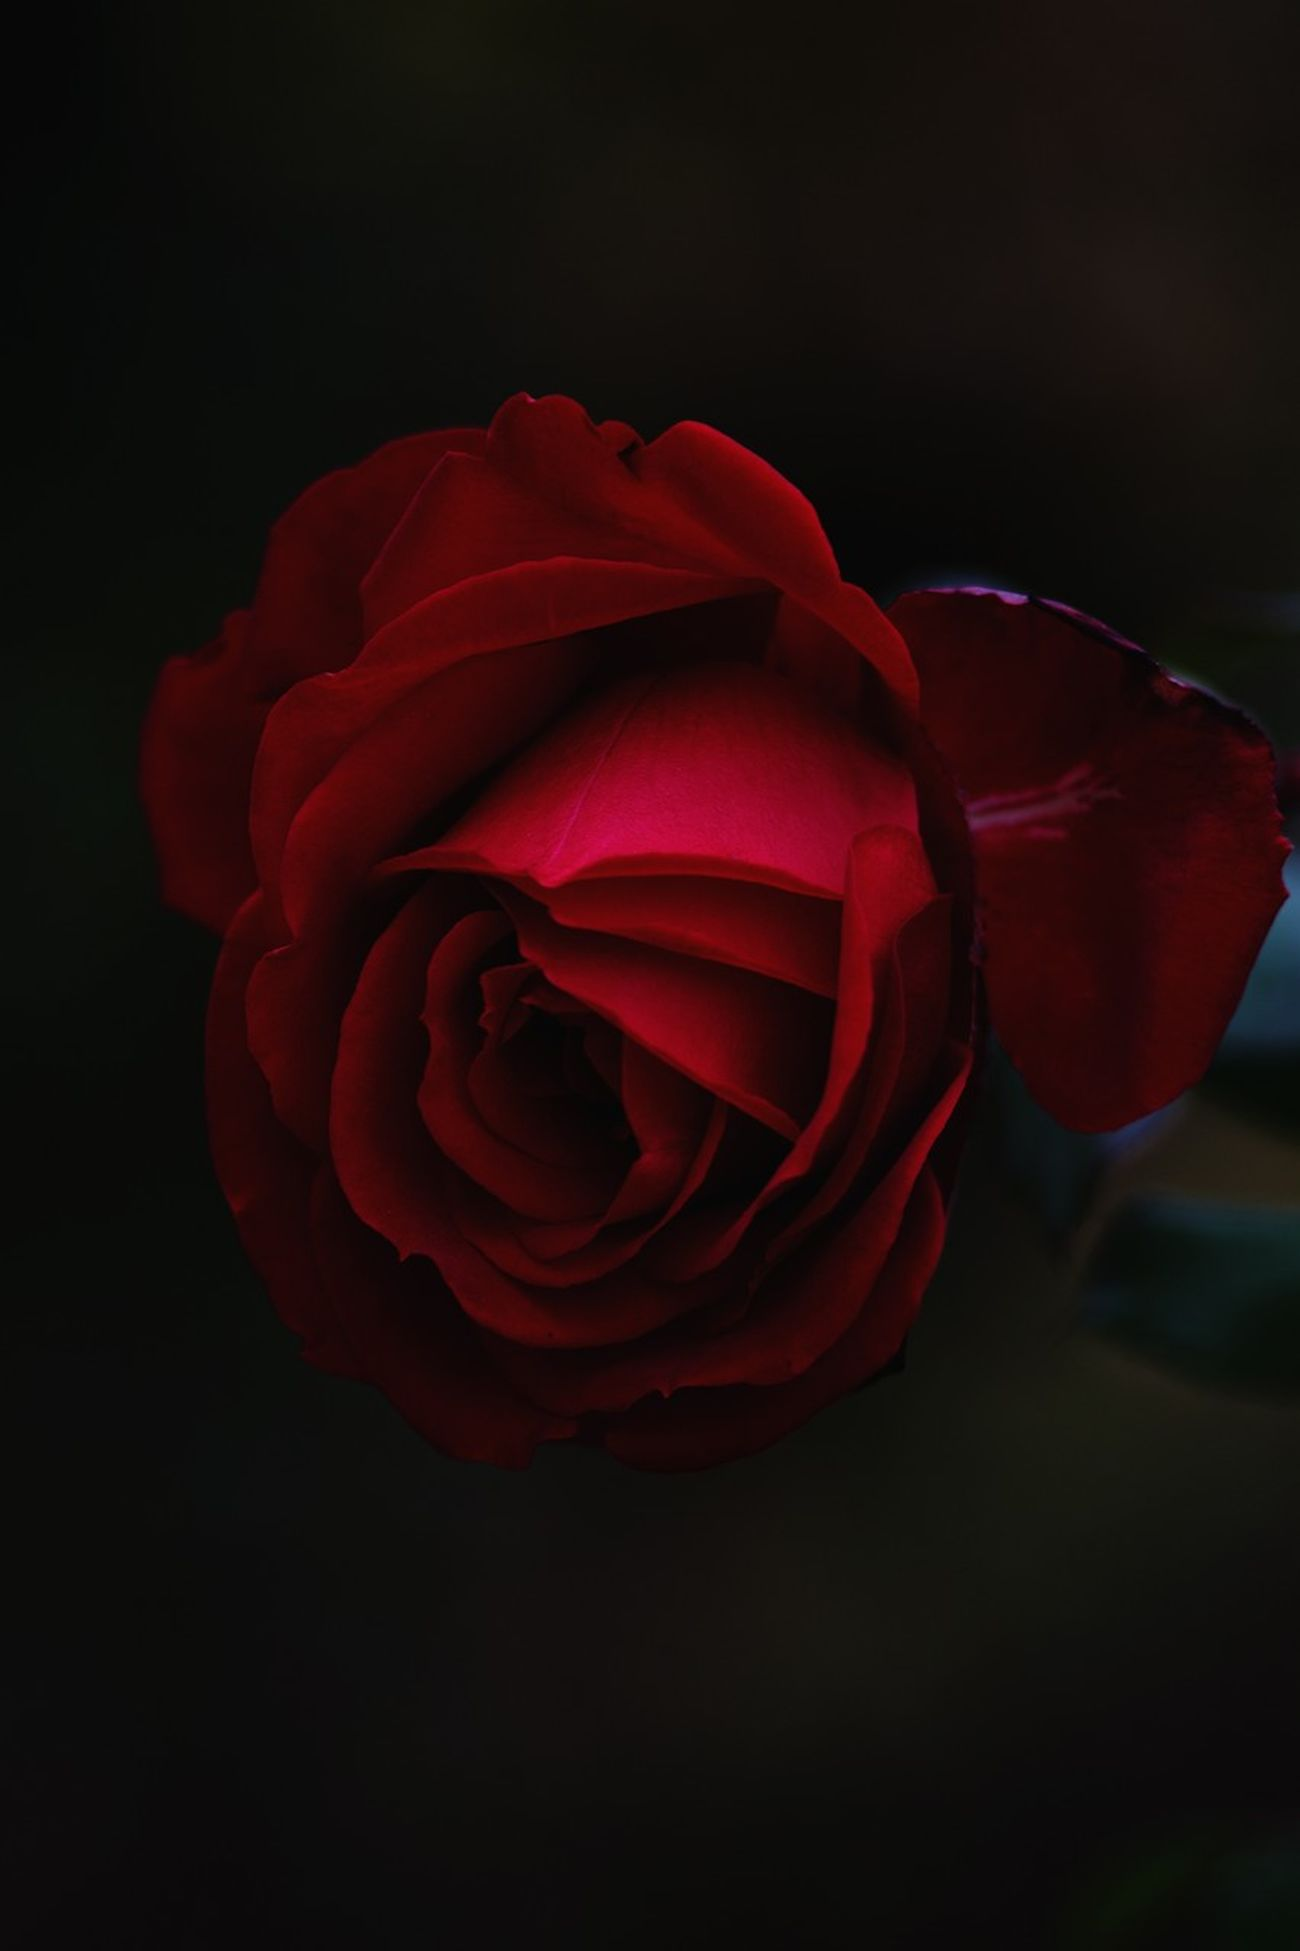 Focus Blur Show What You Seeing. Flowers rs Freshness Fragility Flower Head Rose - Flower Close-up Red Single Flower Black Background Bloom Curled Up Springtime Softness Growth